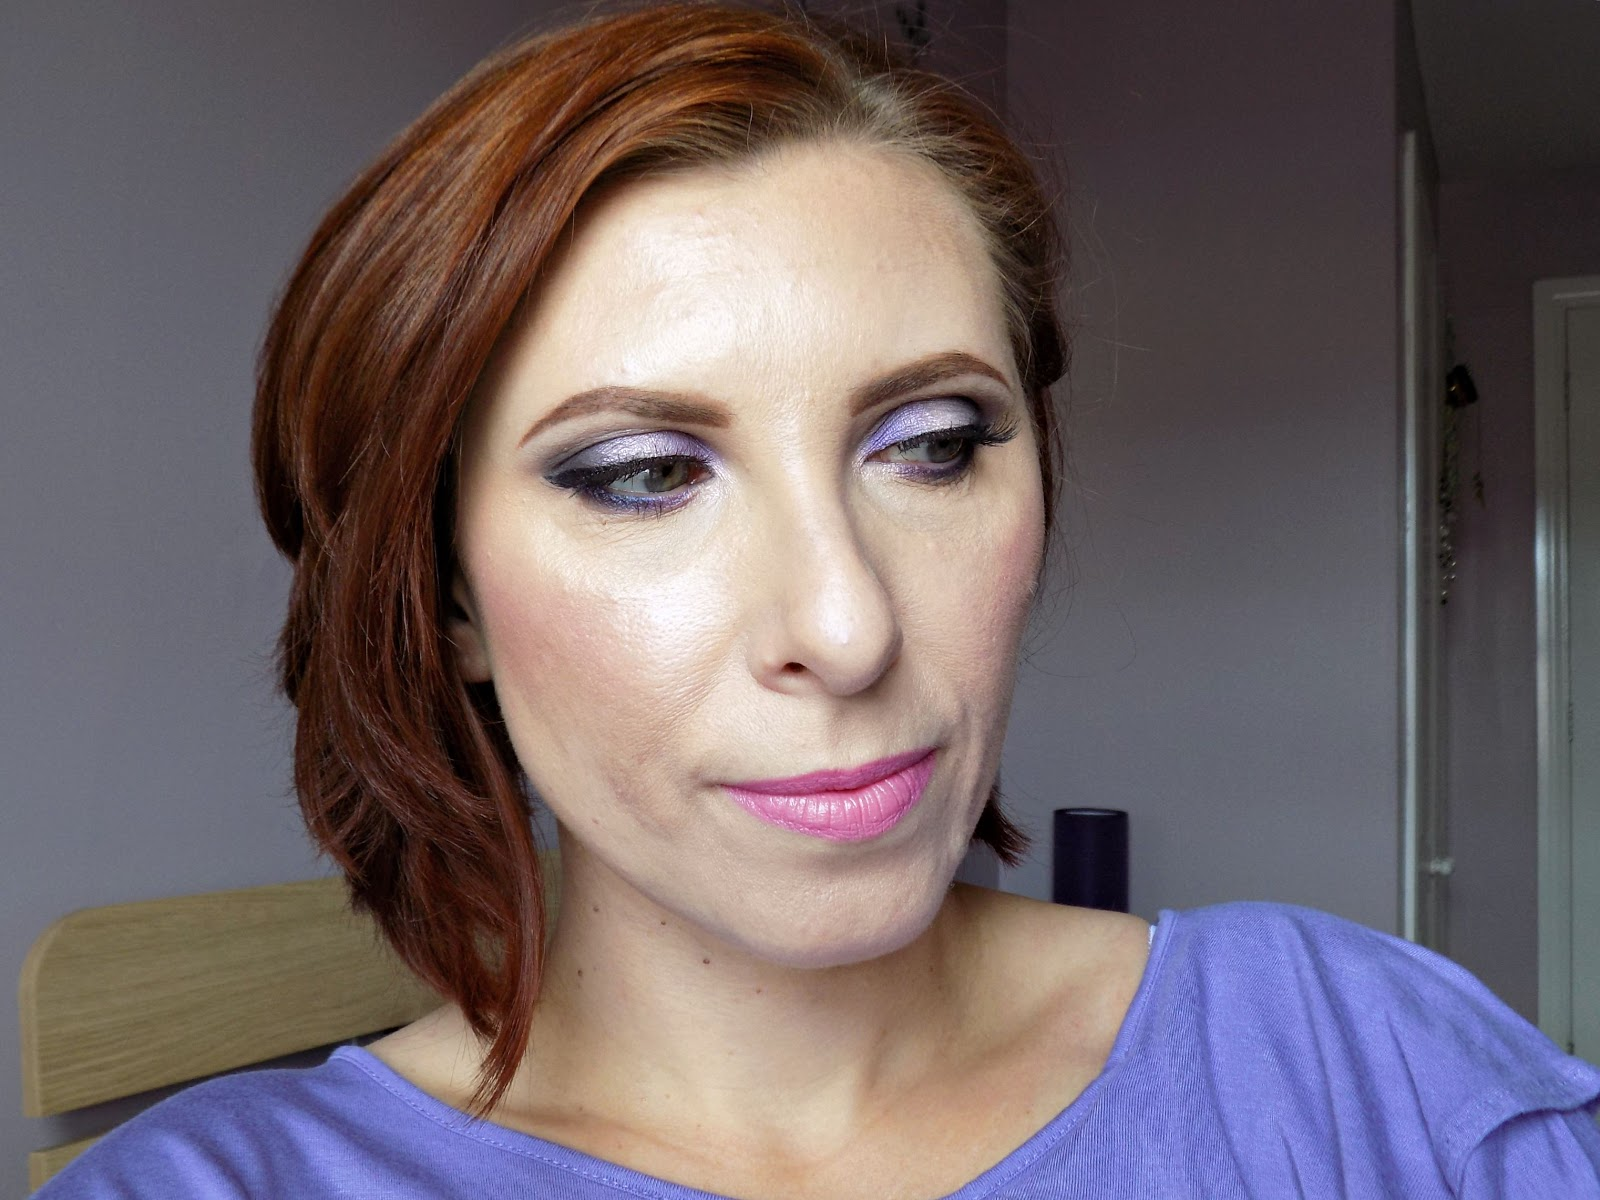 Purple eye makeup look